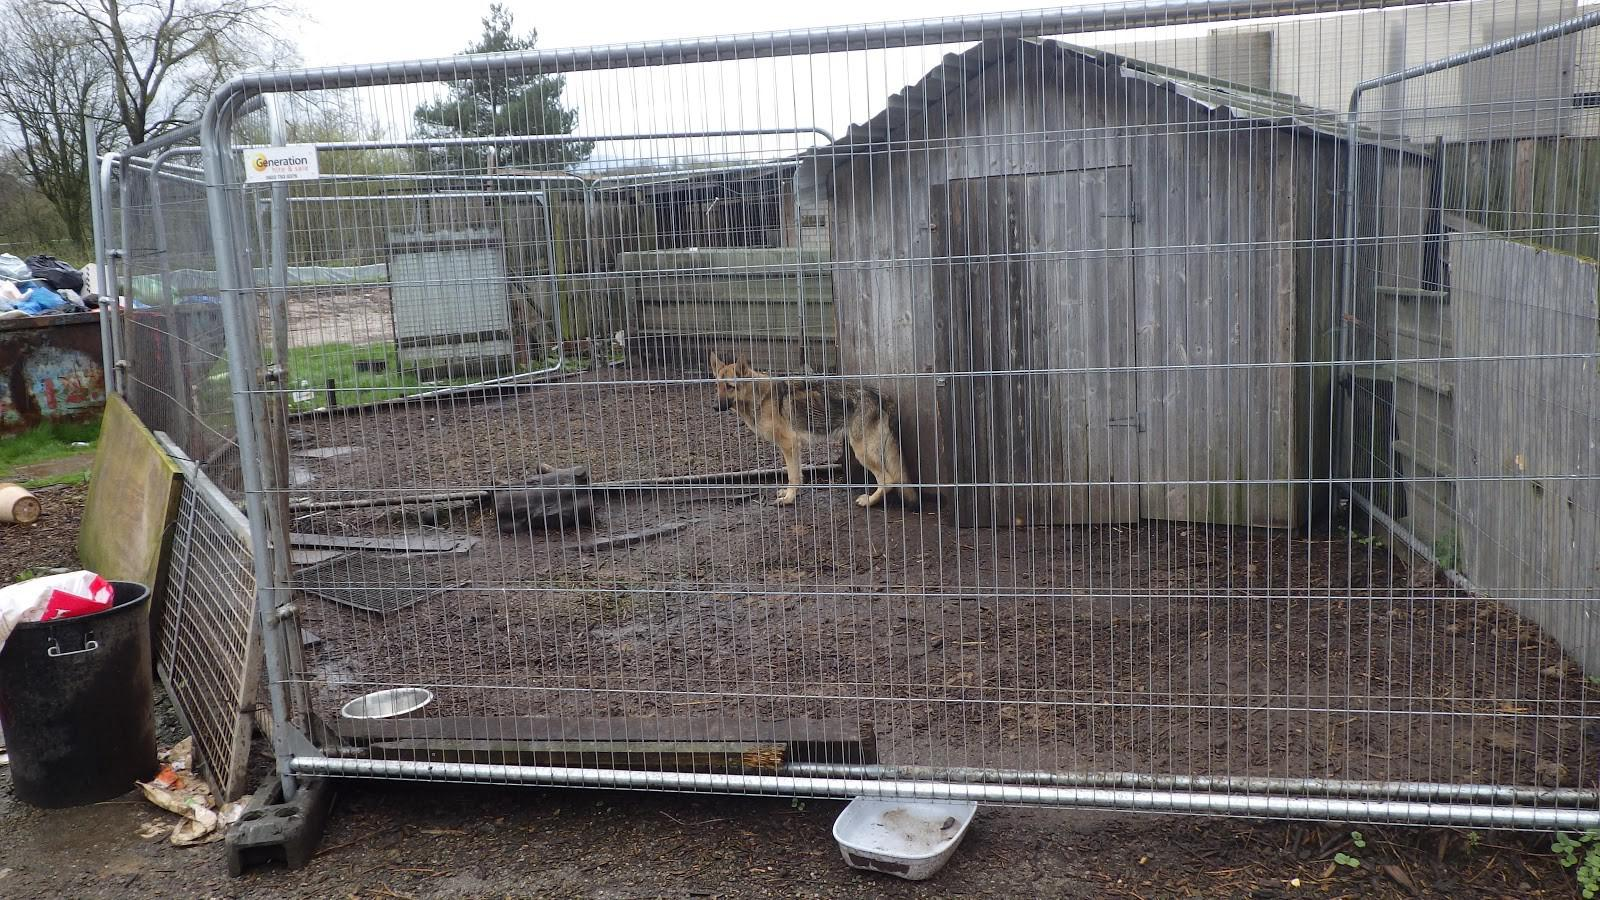 """All the dogs were being kept in filthy, damp conditions - some in makeshift, muddy outside runs and others in cold, concrete pens inside outbuildings."